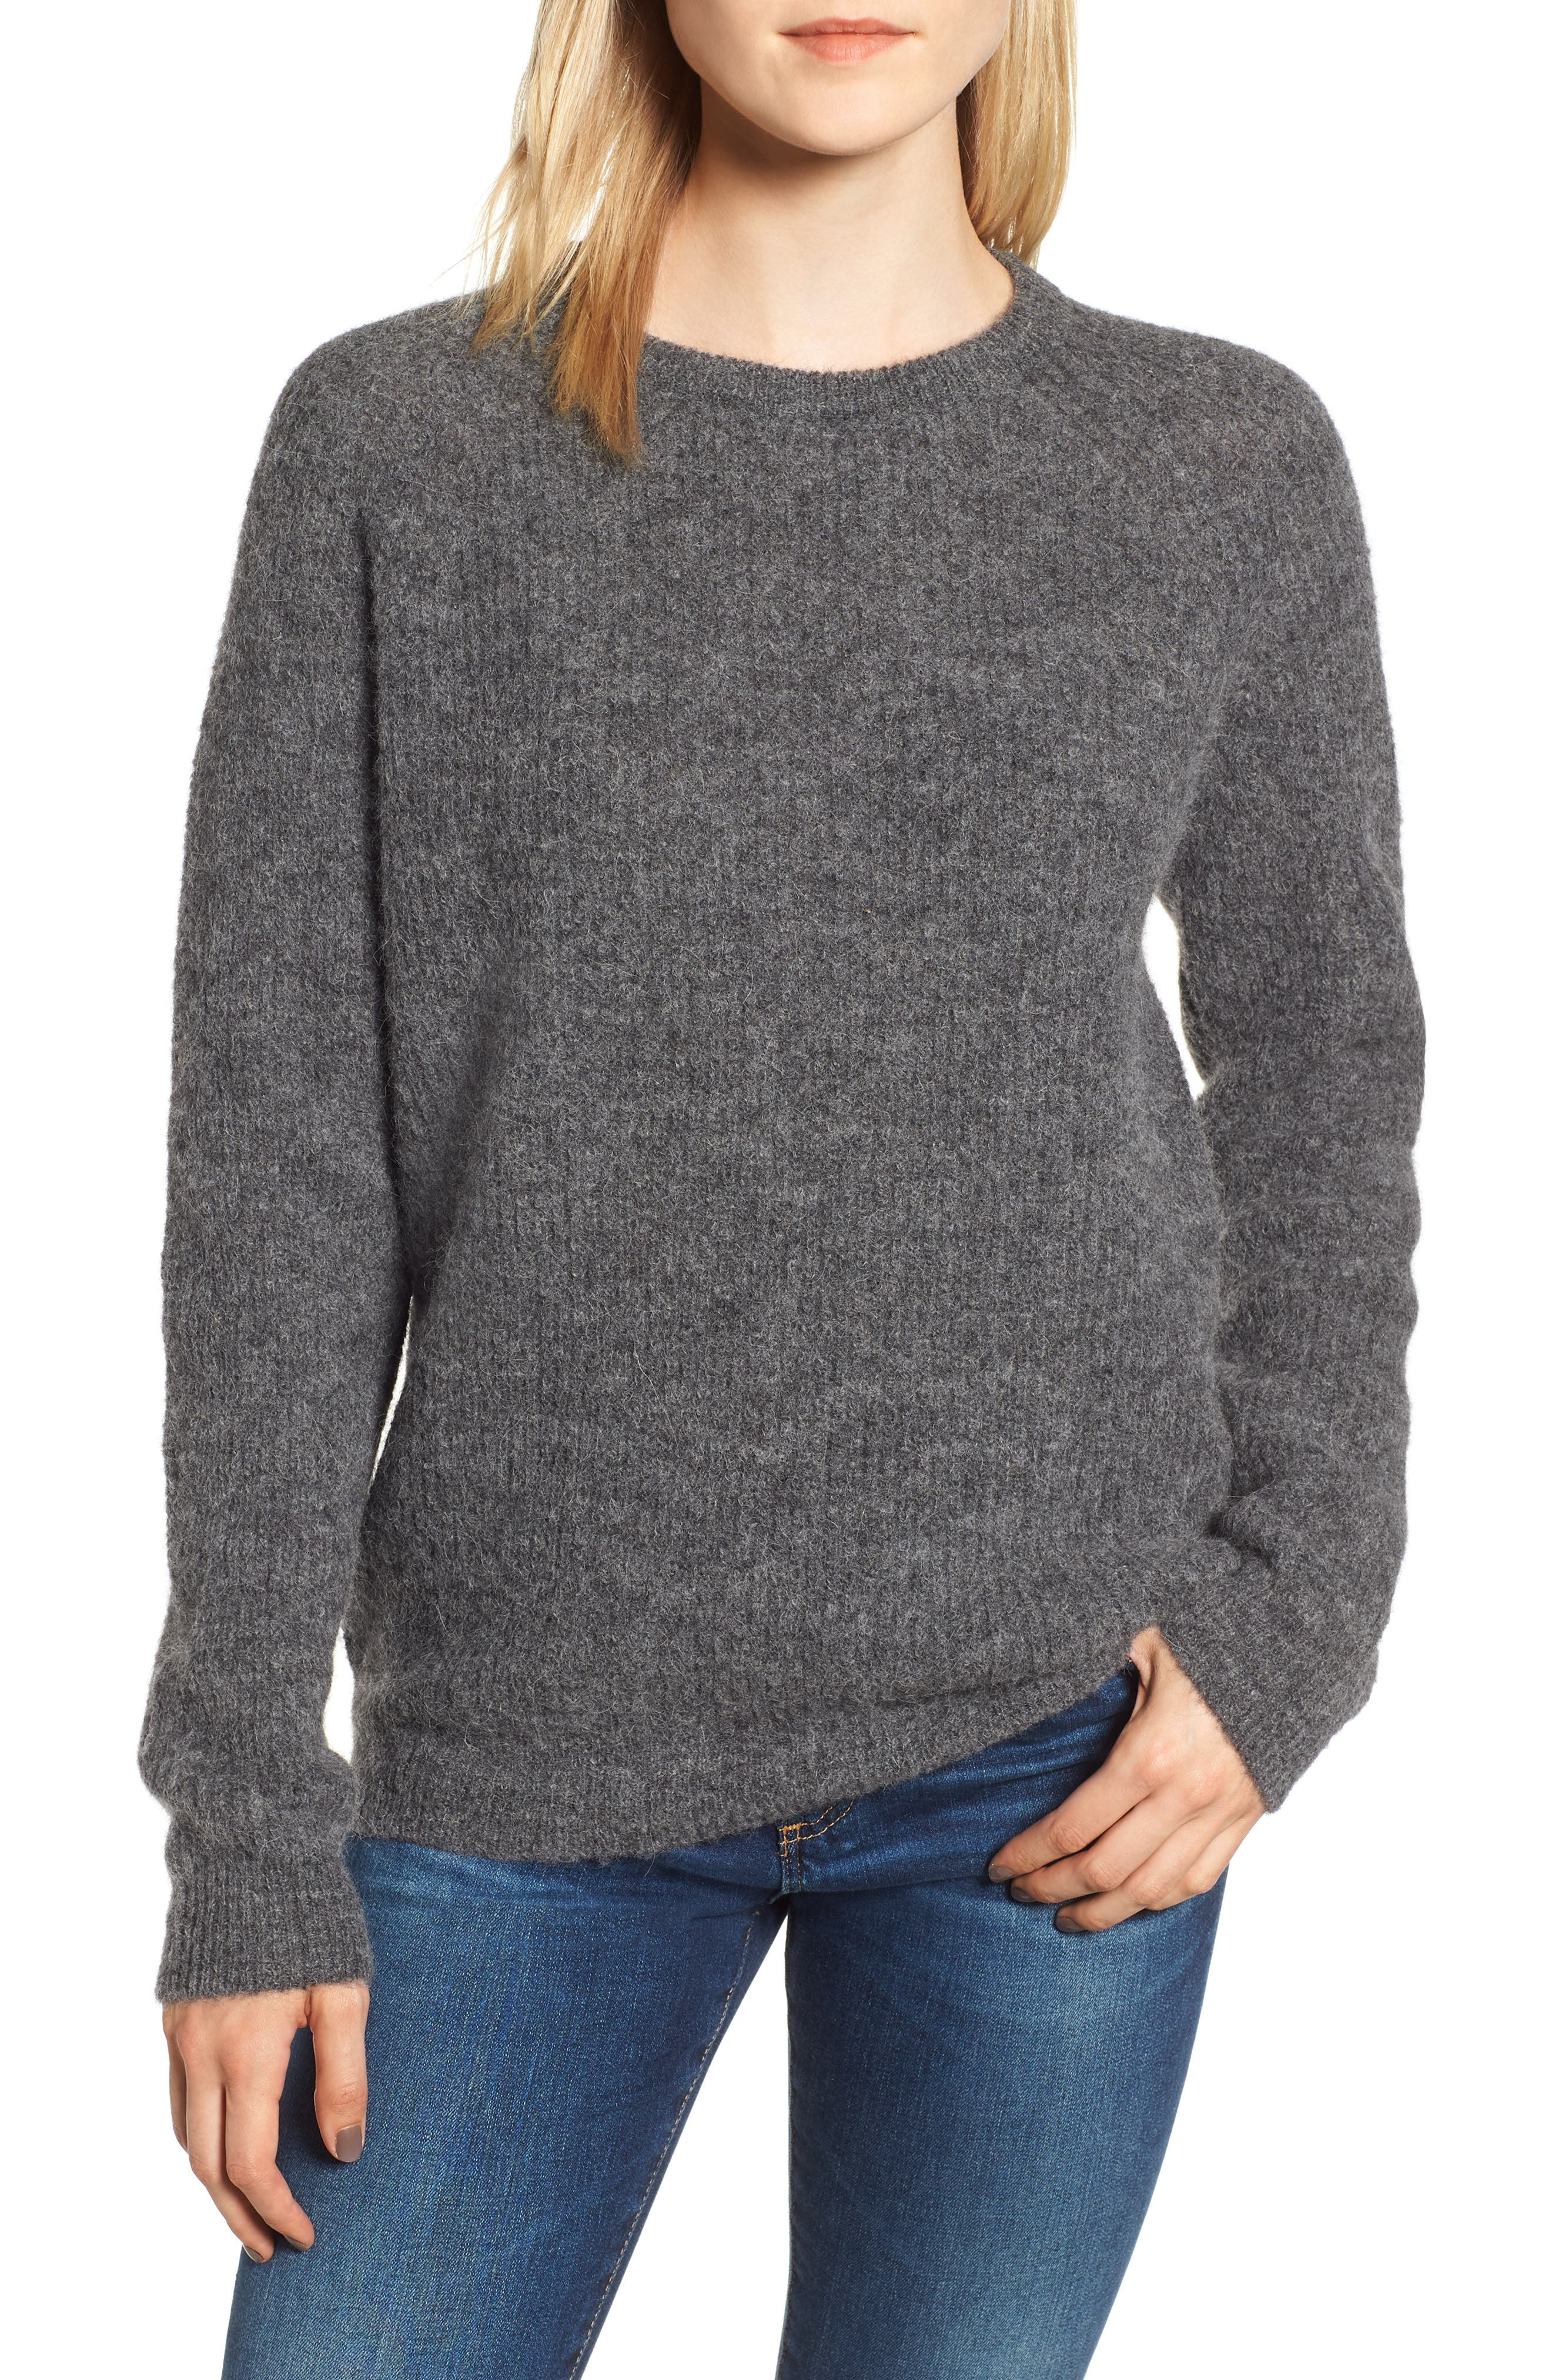 Olivia Crewneck Sweater,                             Main thumbnail 1, color,                             DARK GREY MARL